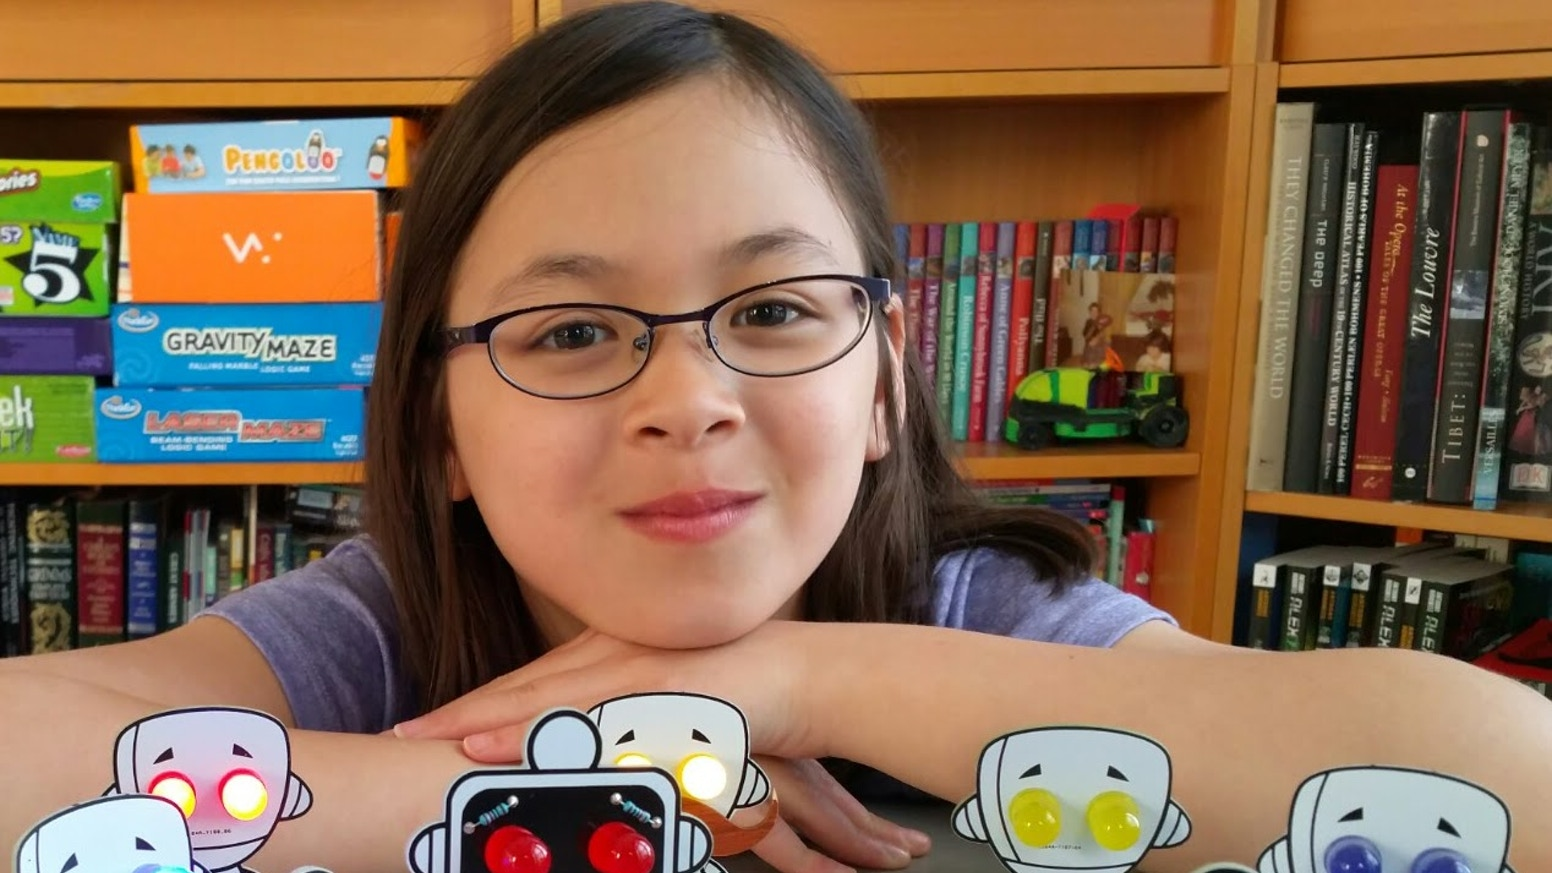 Buzz is an easy and fun educational kit that builds STEAM / STEM skills and grows from a project to a friend you can program.